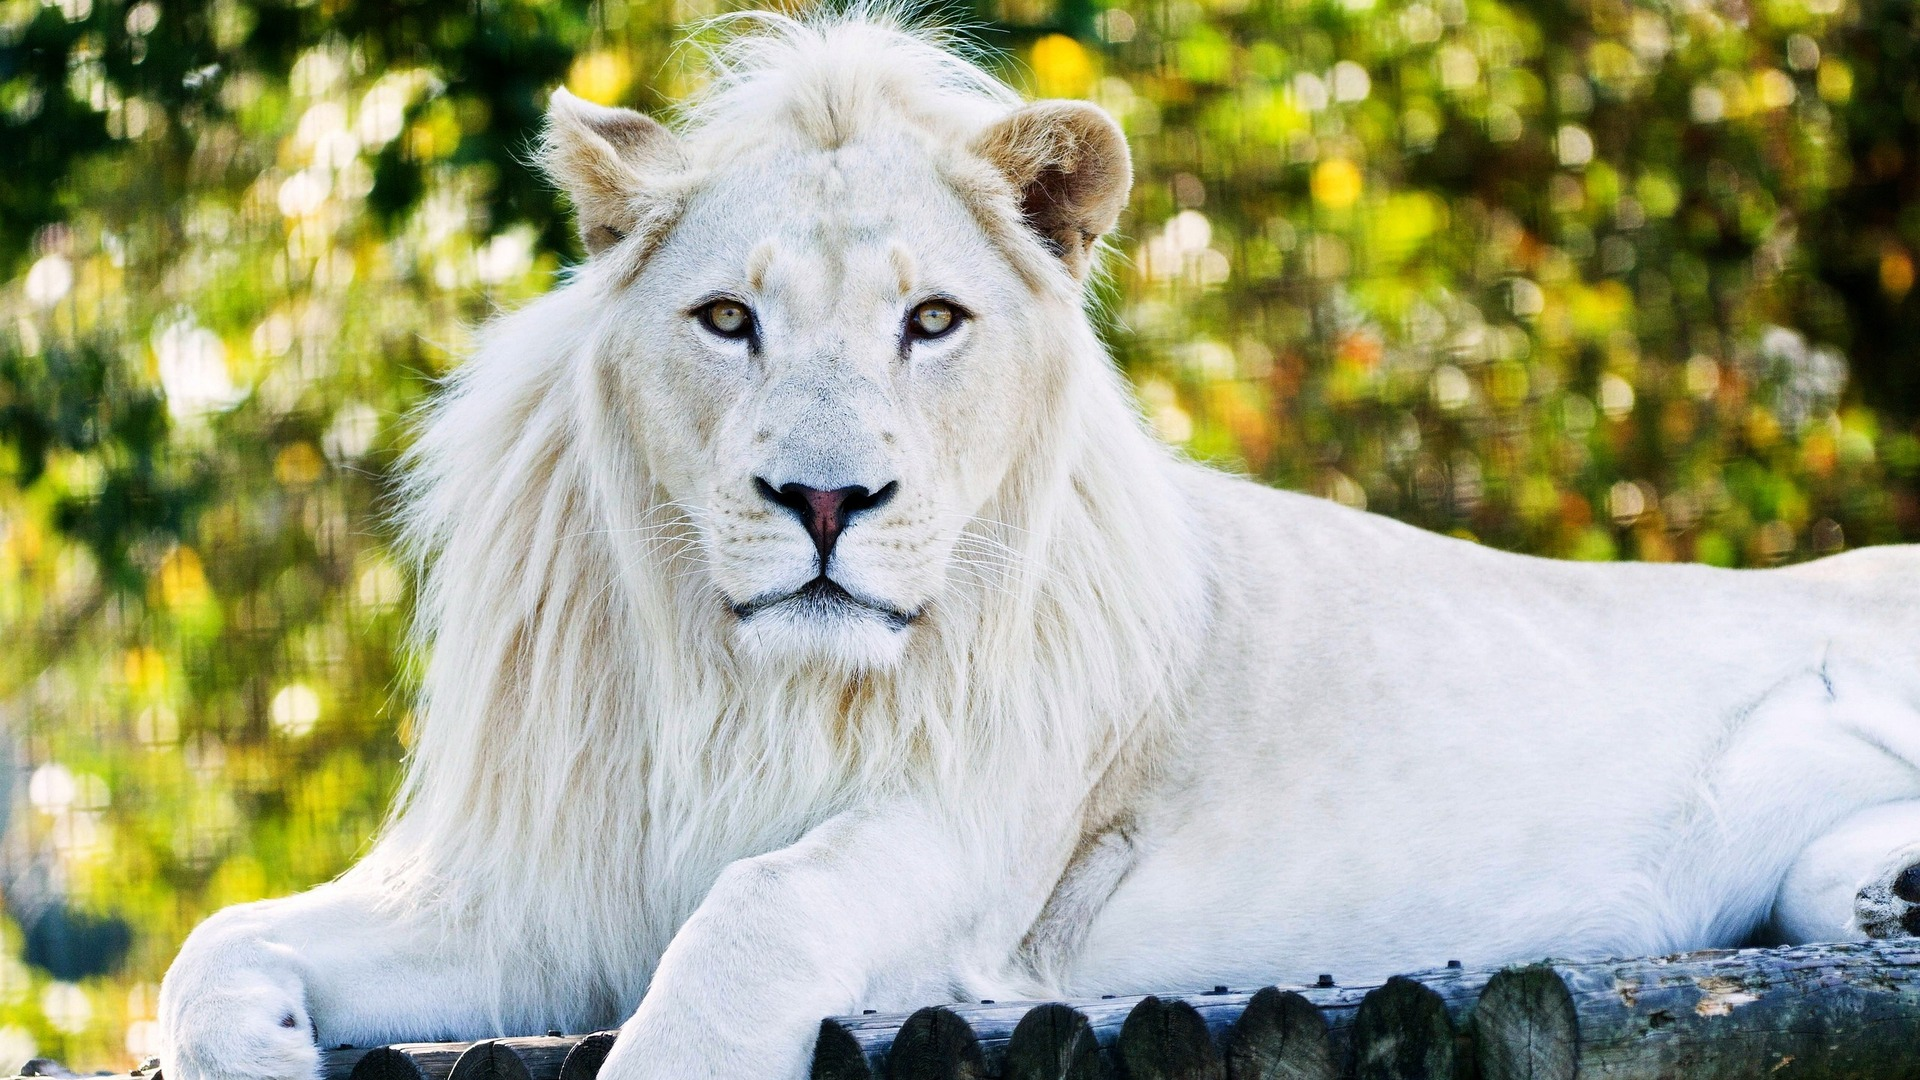 1920x1080 White Lion Laptop Full Hd 1080p Hd 4k Wallpapers Images